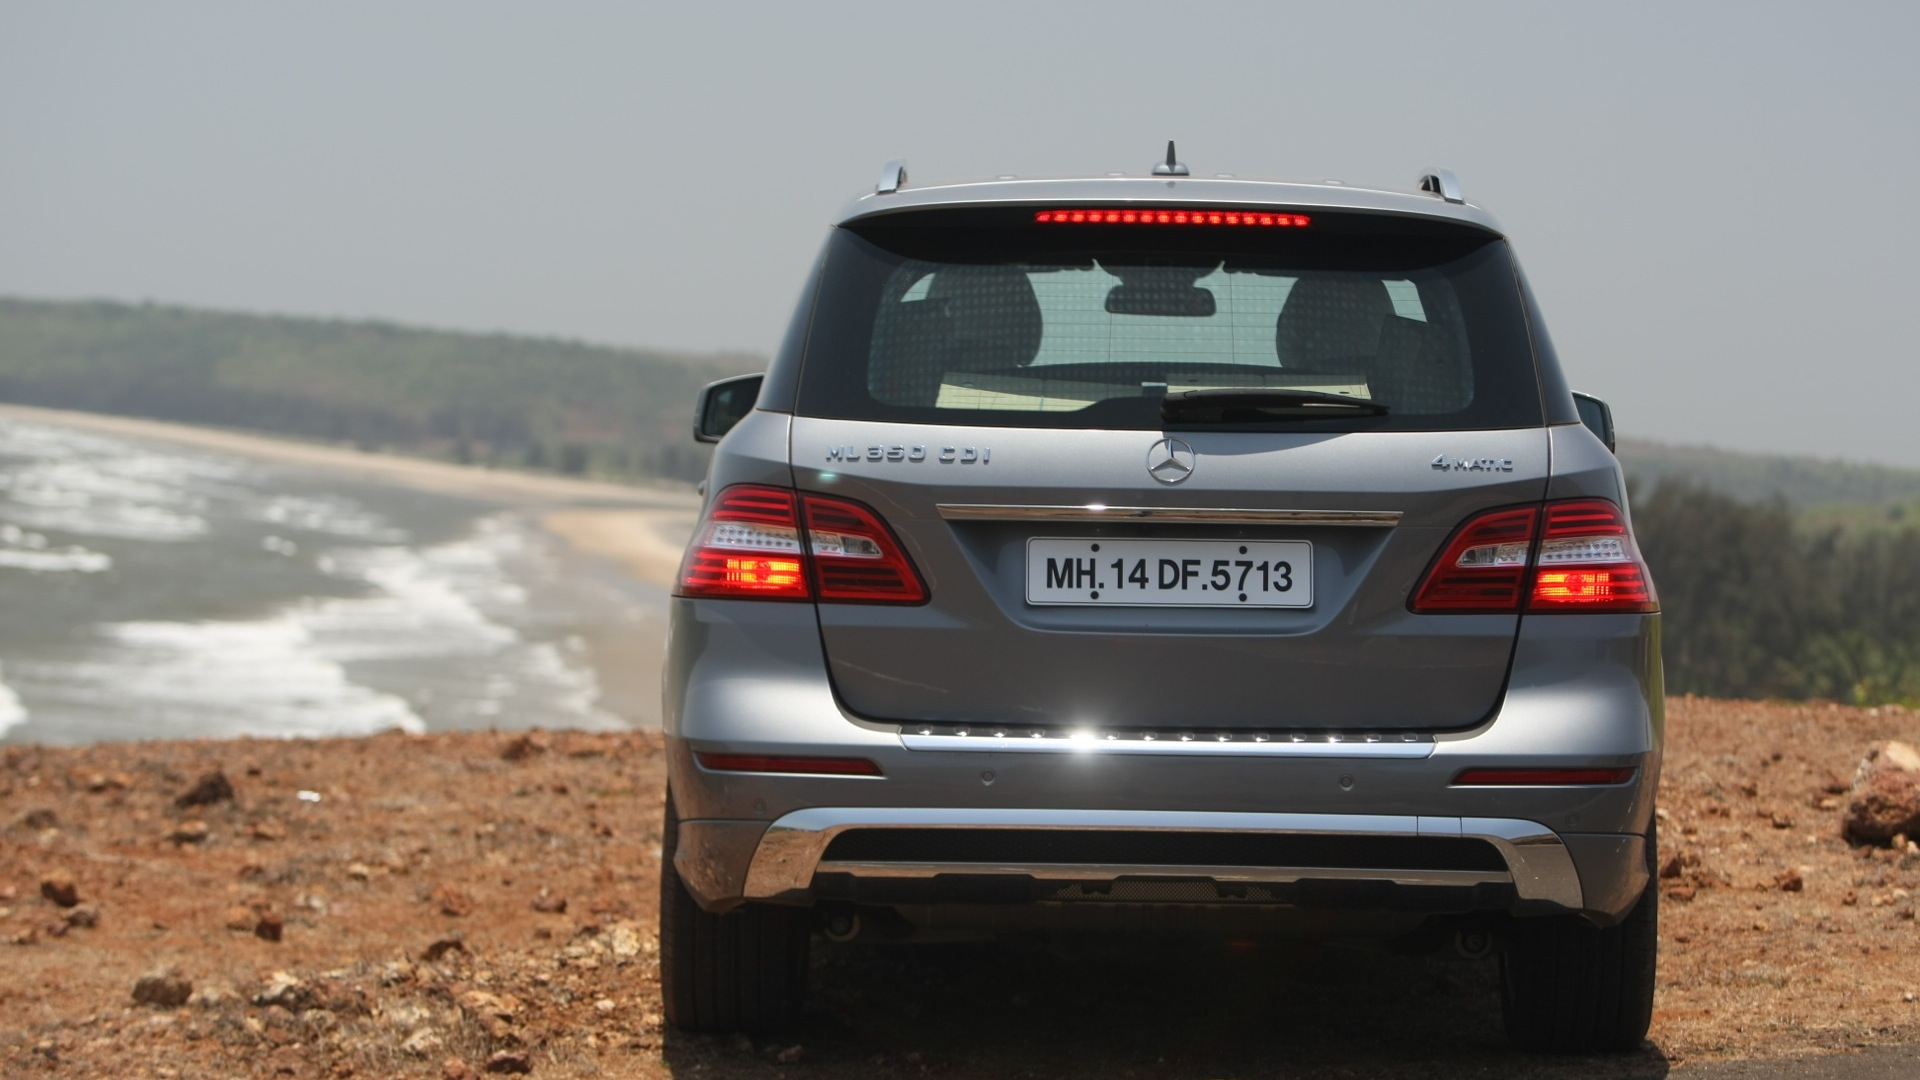 2498_2 Cool Review About 2012 Mercedes Ml350 Bluetec